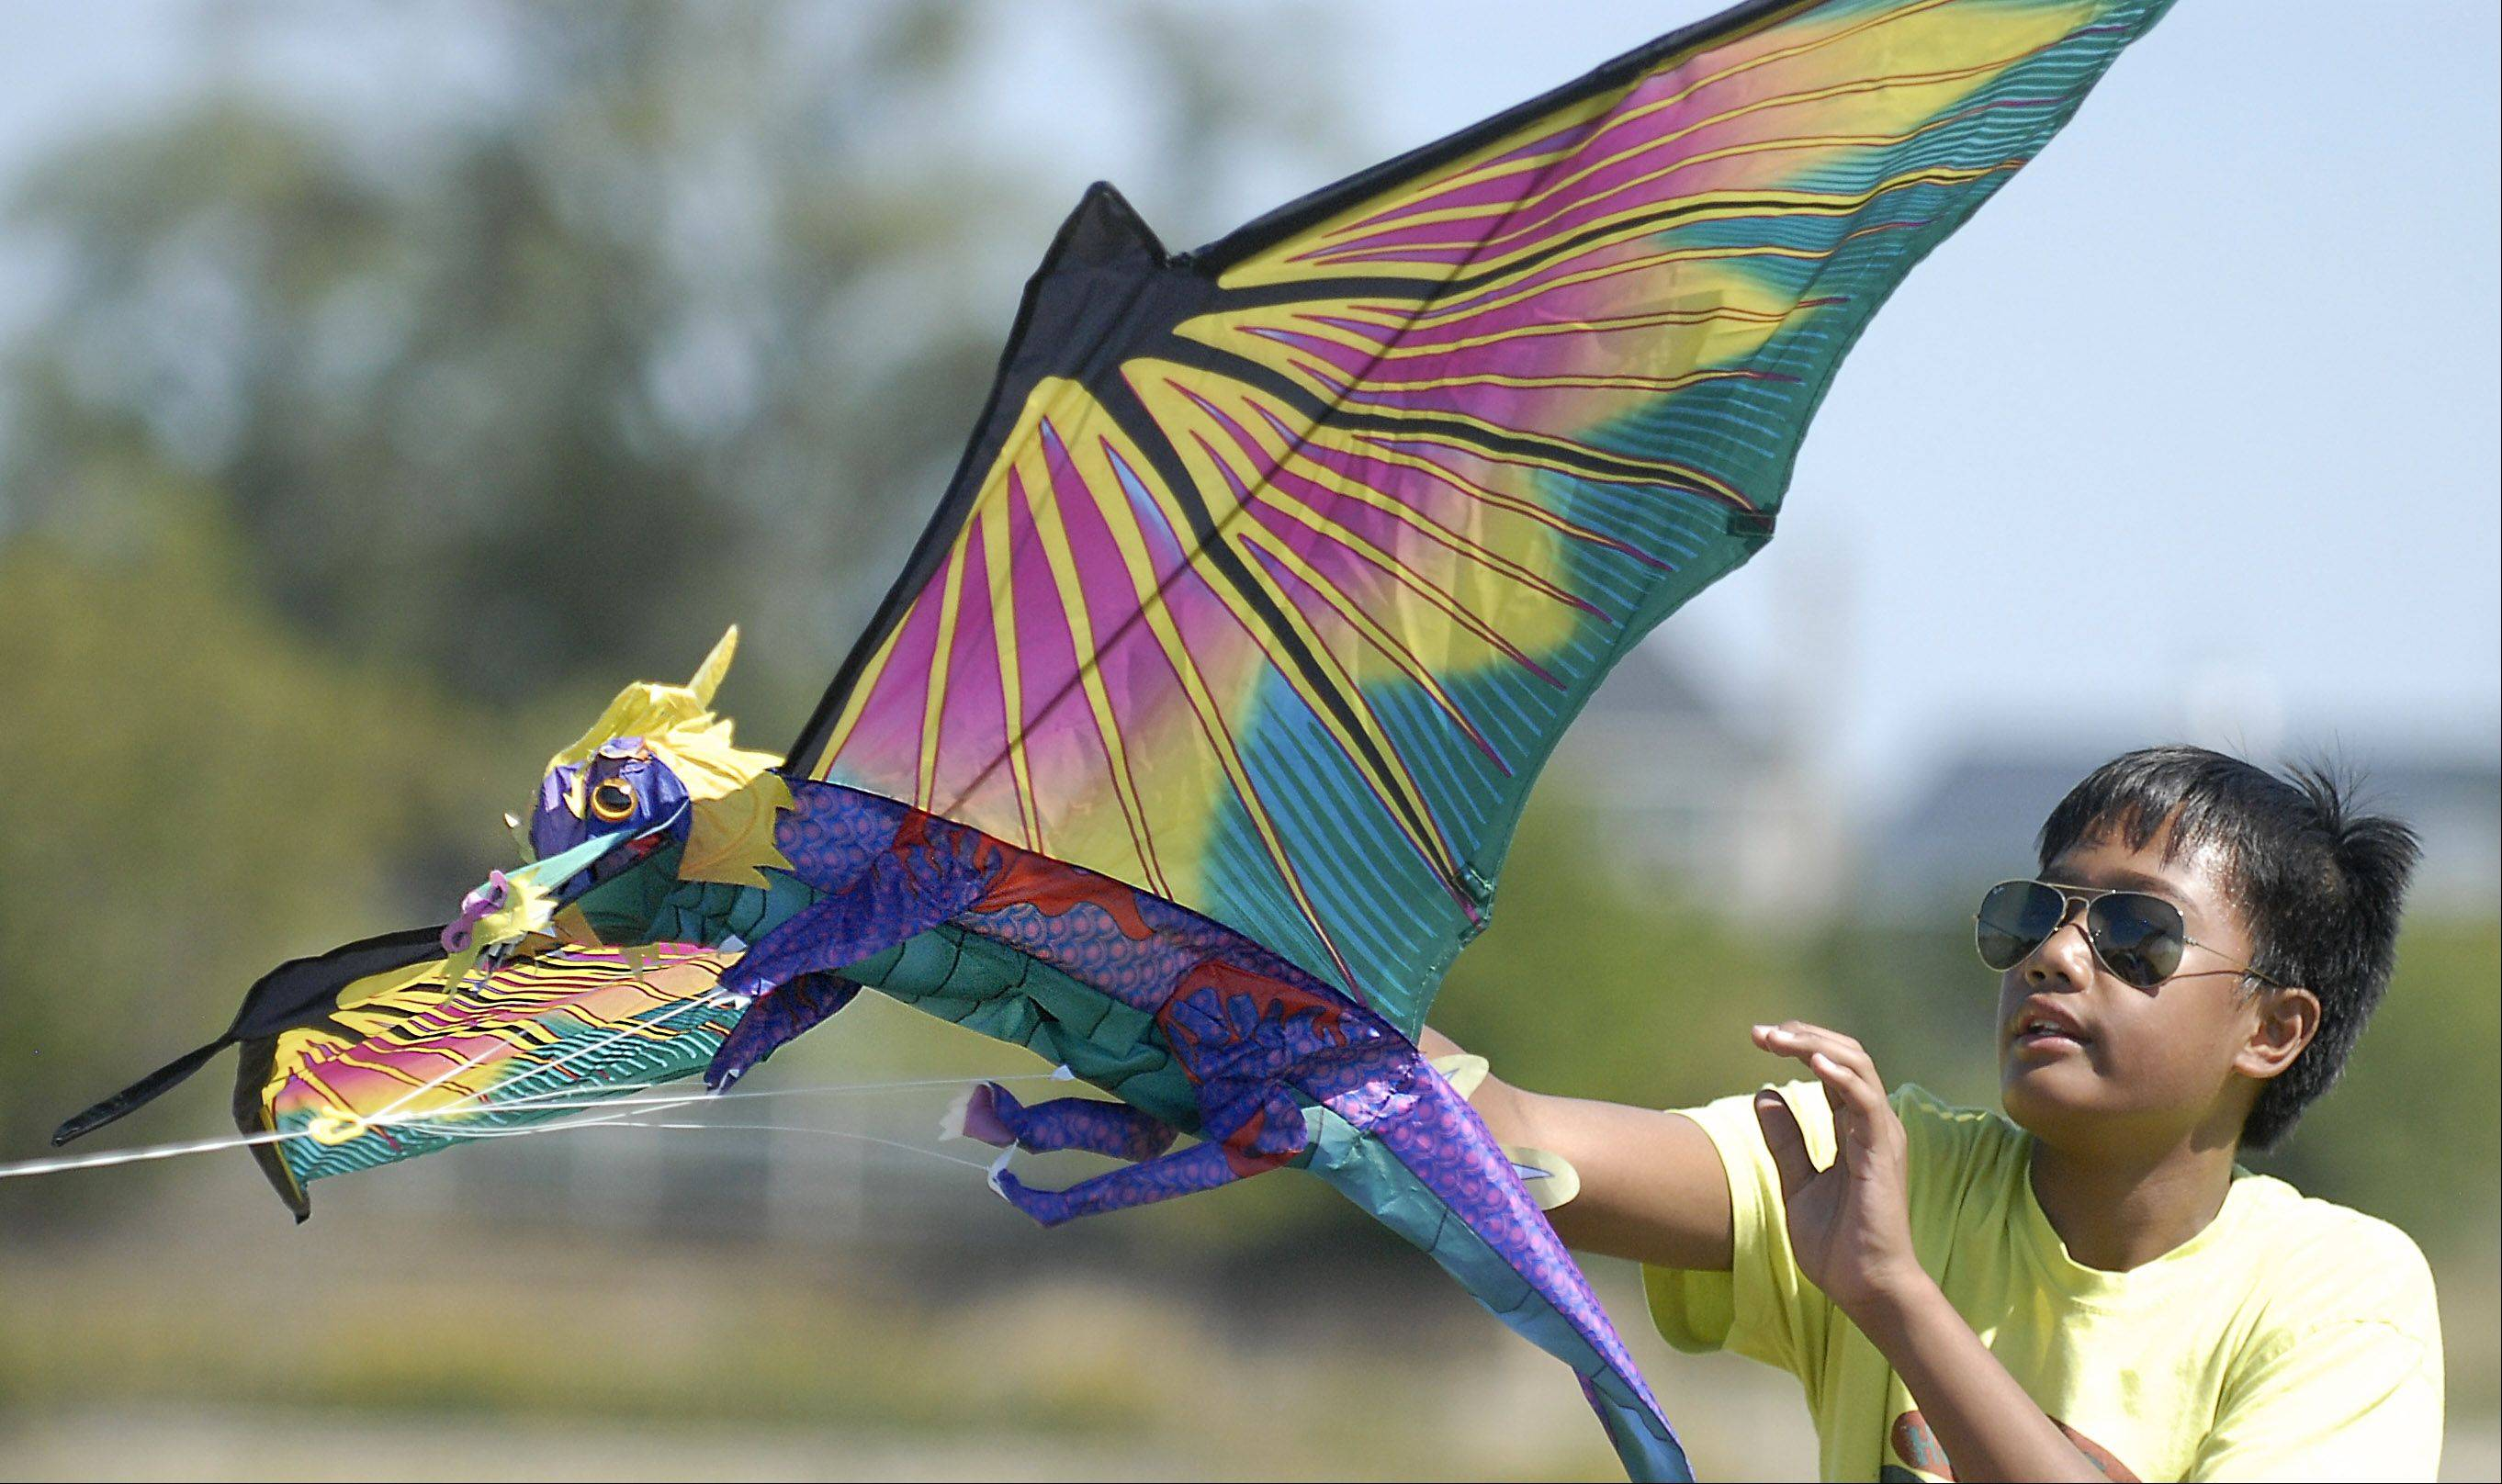 Kyle Liwanag releases a dragon kite for his friend, Brandon Jenkins, both 12 and from Geneva, at Peck Farm Park on Saturday. They attended the Geneva Park District's second annual Kite Festival.